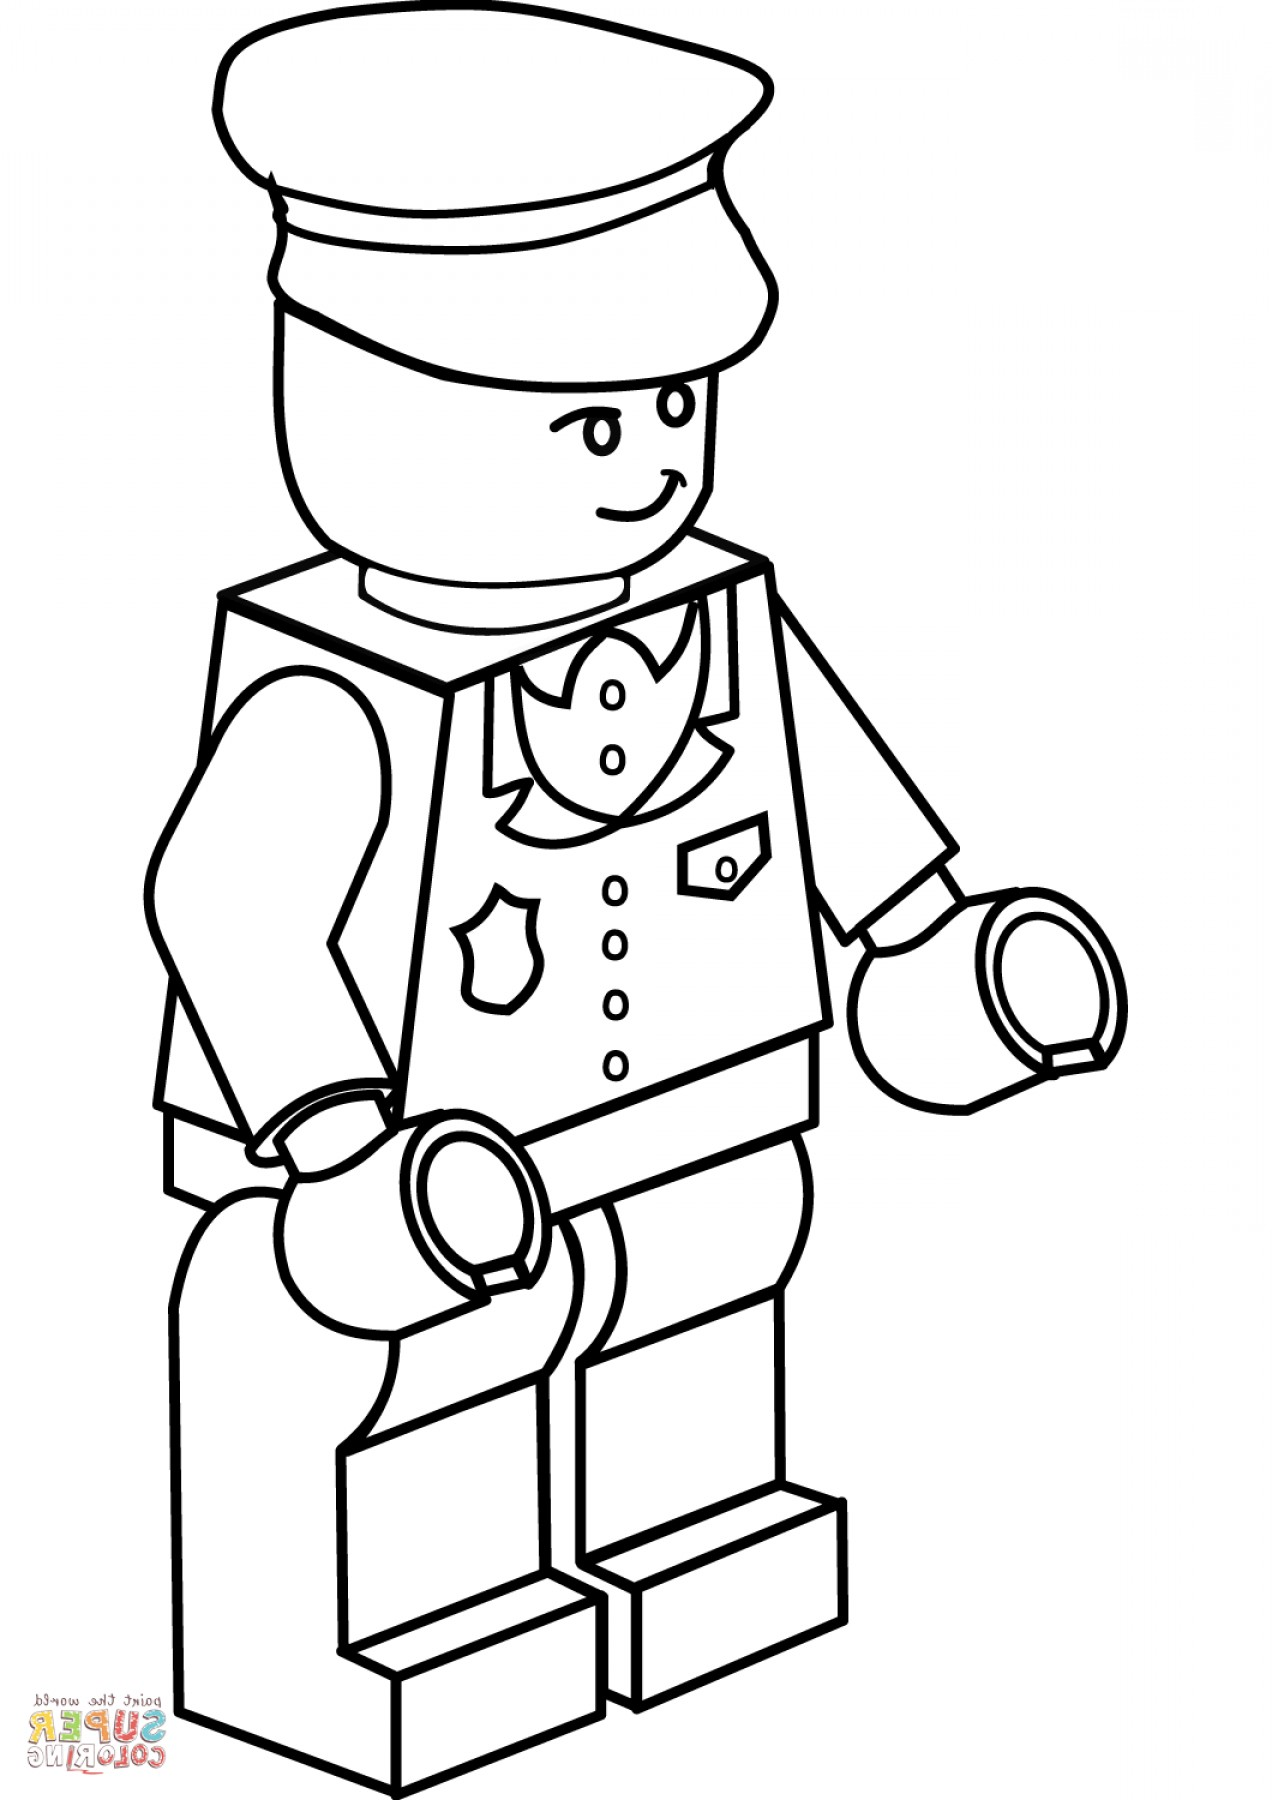 colour by number lego 281 best images about coloring pages on pinterest lego by number colour